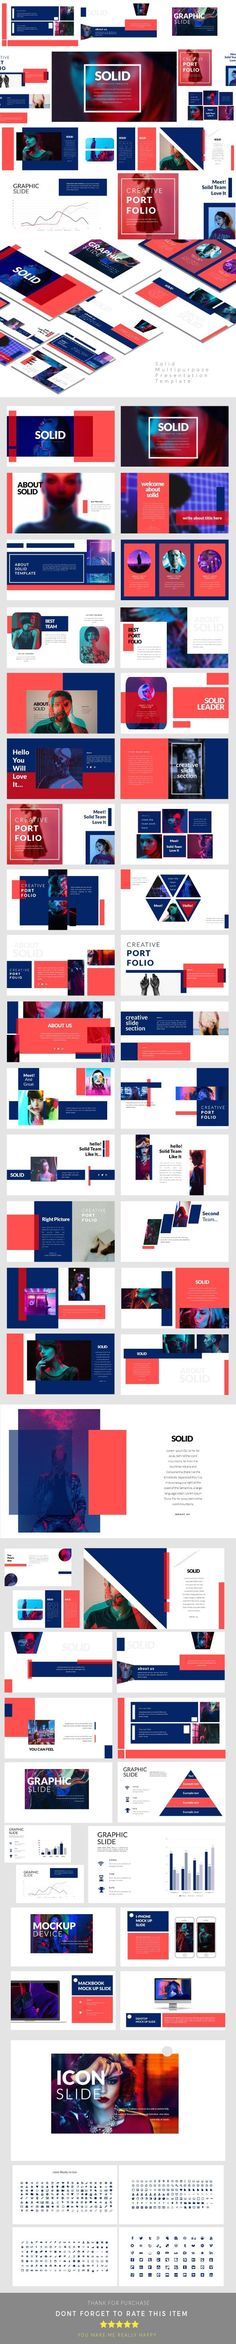 multipurpose creative template powerpoint — powerpoint ppt, Graphicriver Folio Powerpoint Presentation Template, Presentation templates